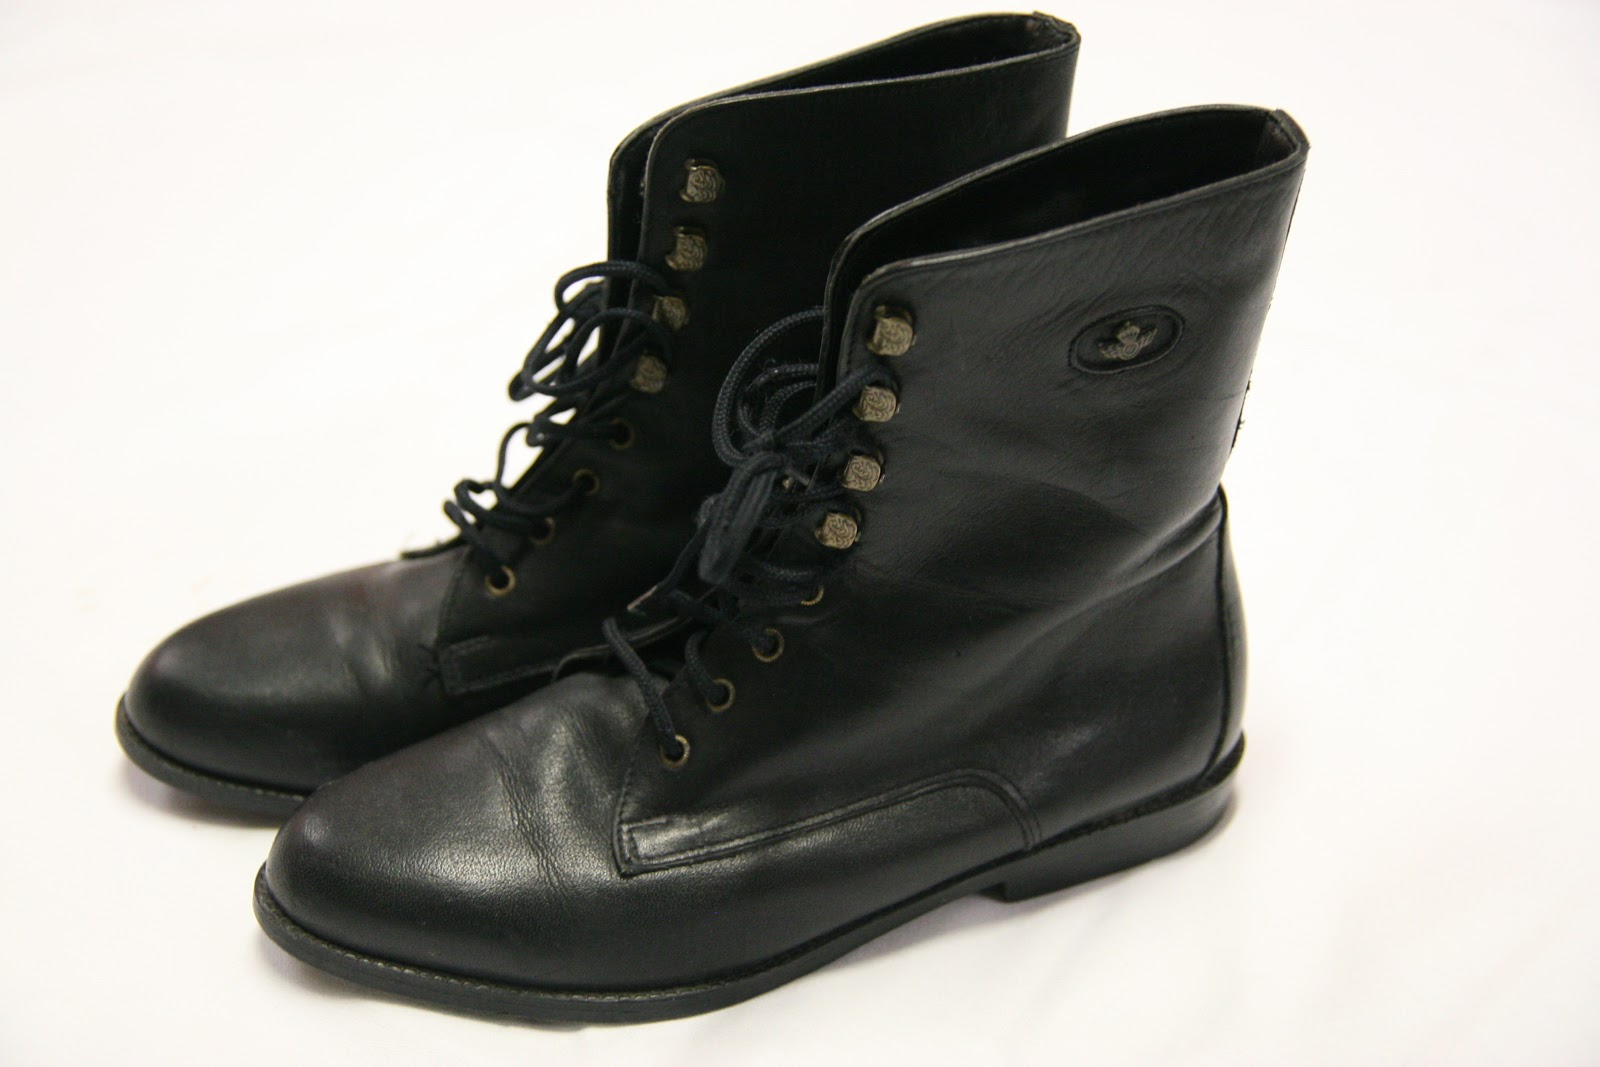 Thrift and Shout: Trend Alert: Combat Boots